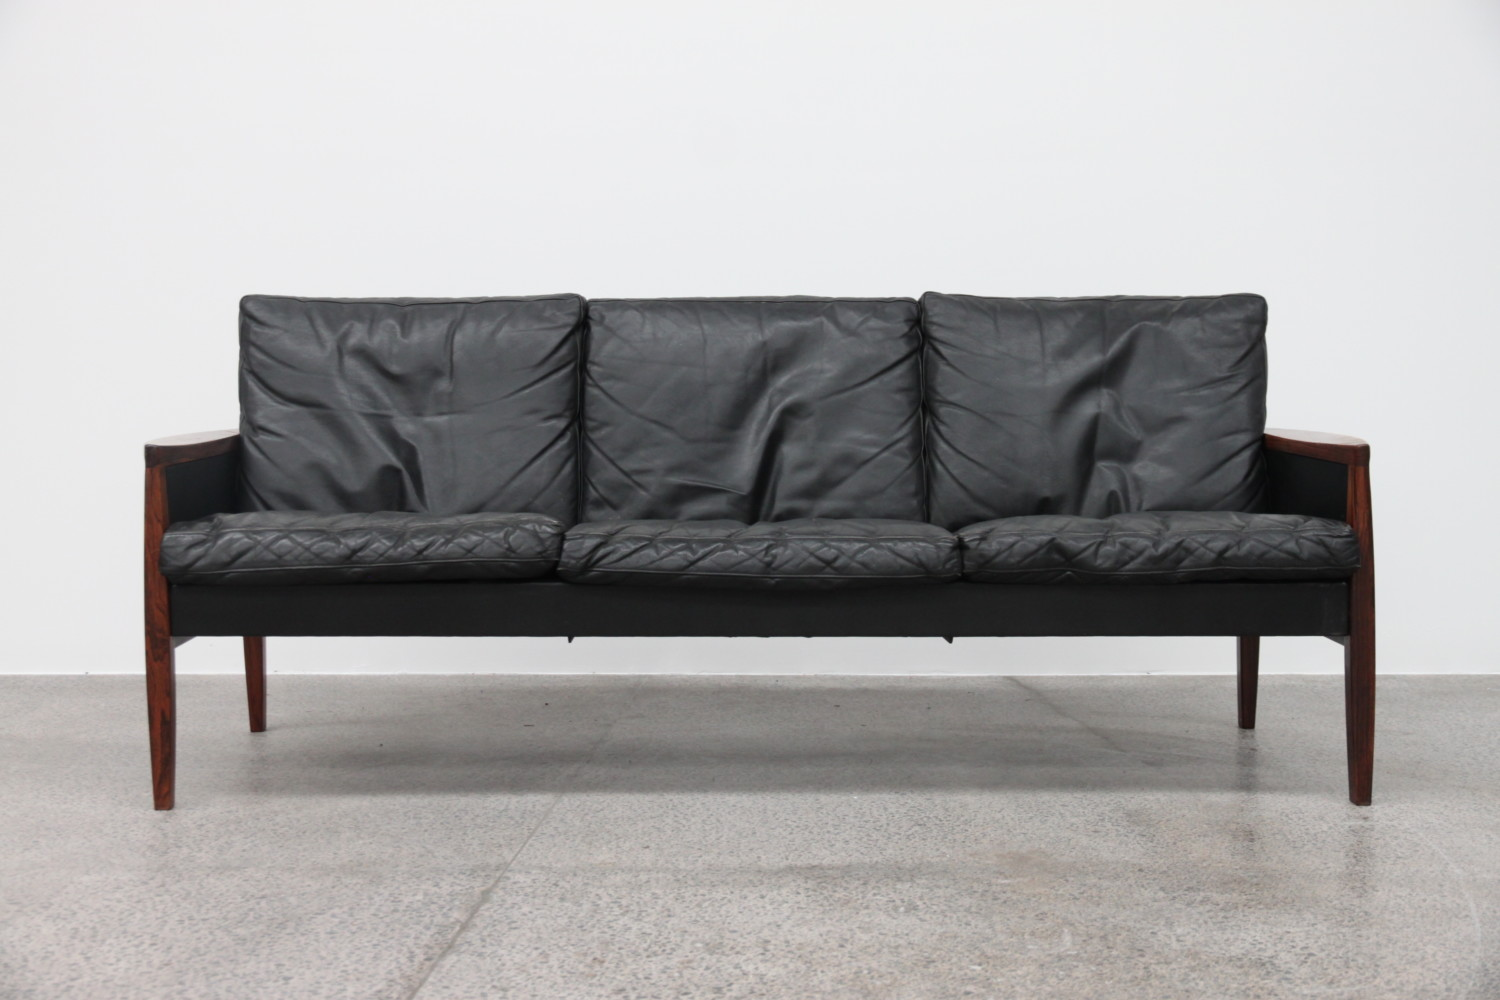 Leather Sofa by Hans Olsen sold